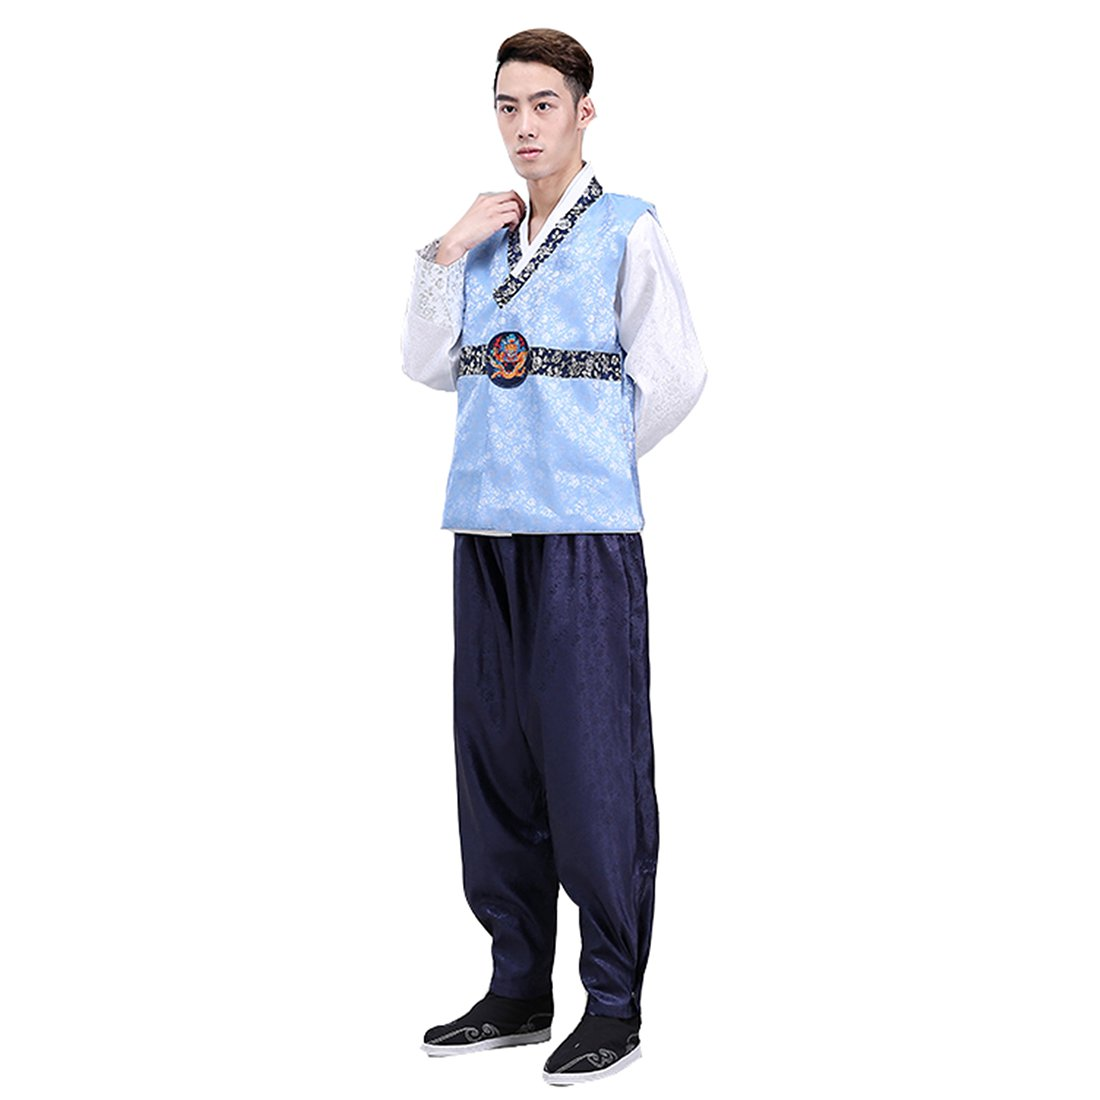 Ez-sofei Men's Korean Traditional Hanbok Sets Cosplay Costumes M Blue